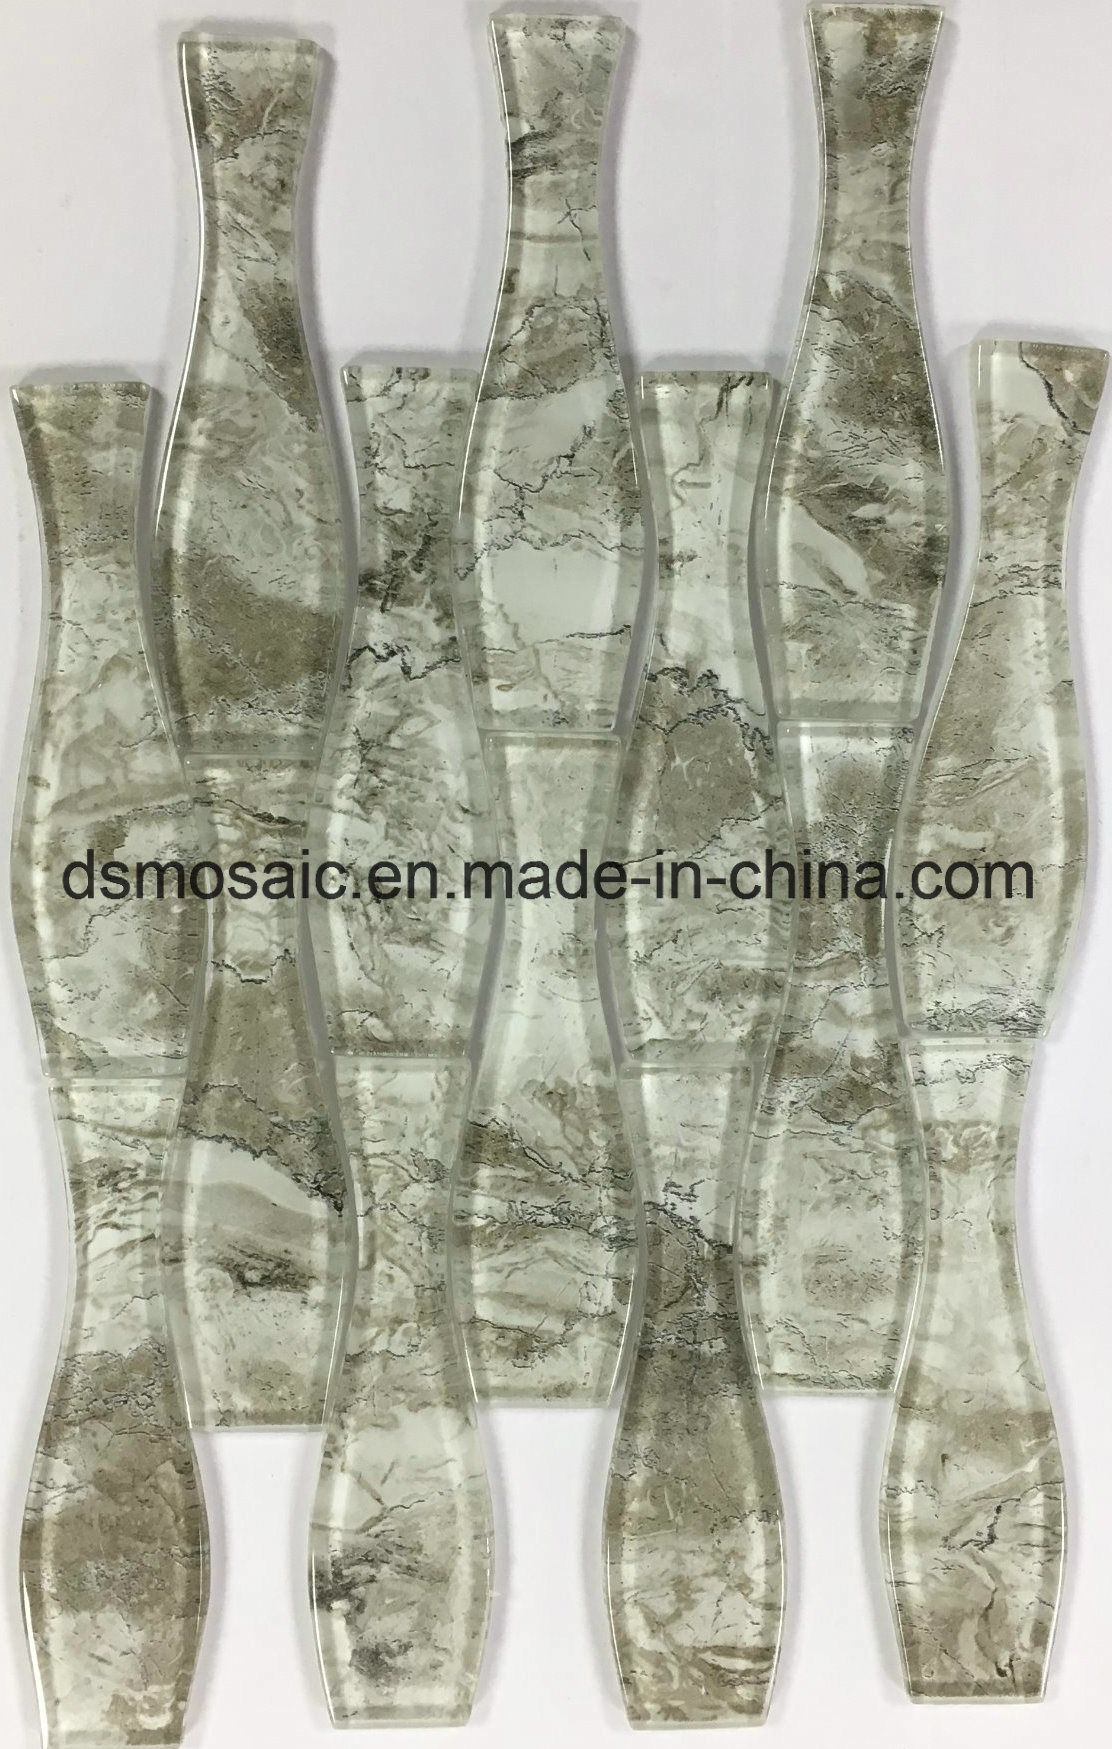 New Stone Pattern Art Laminated Glass Mosaic Tile for Wall